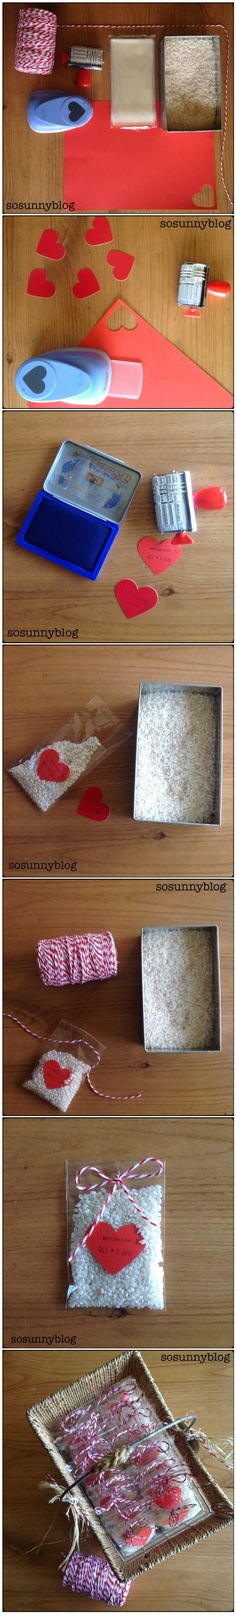 So easy rice wedding packaging, just for very special wedding :-) Arroz para bodas muy especiales, otra manera de presentarlo